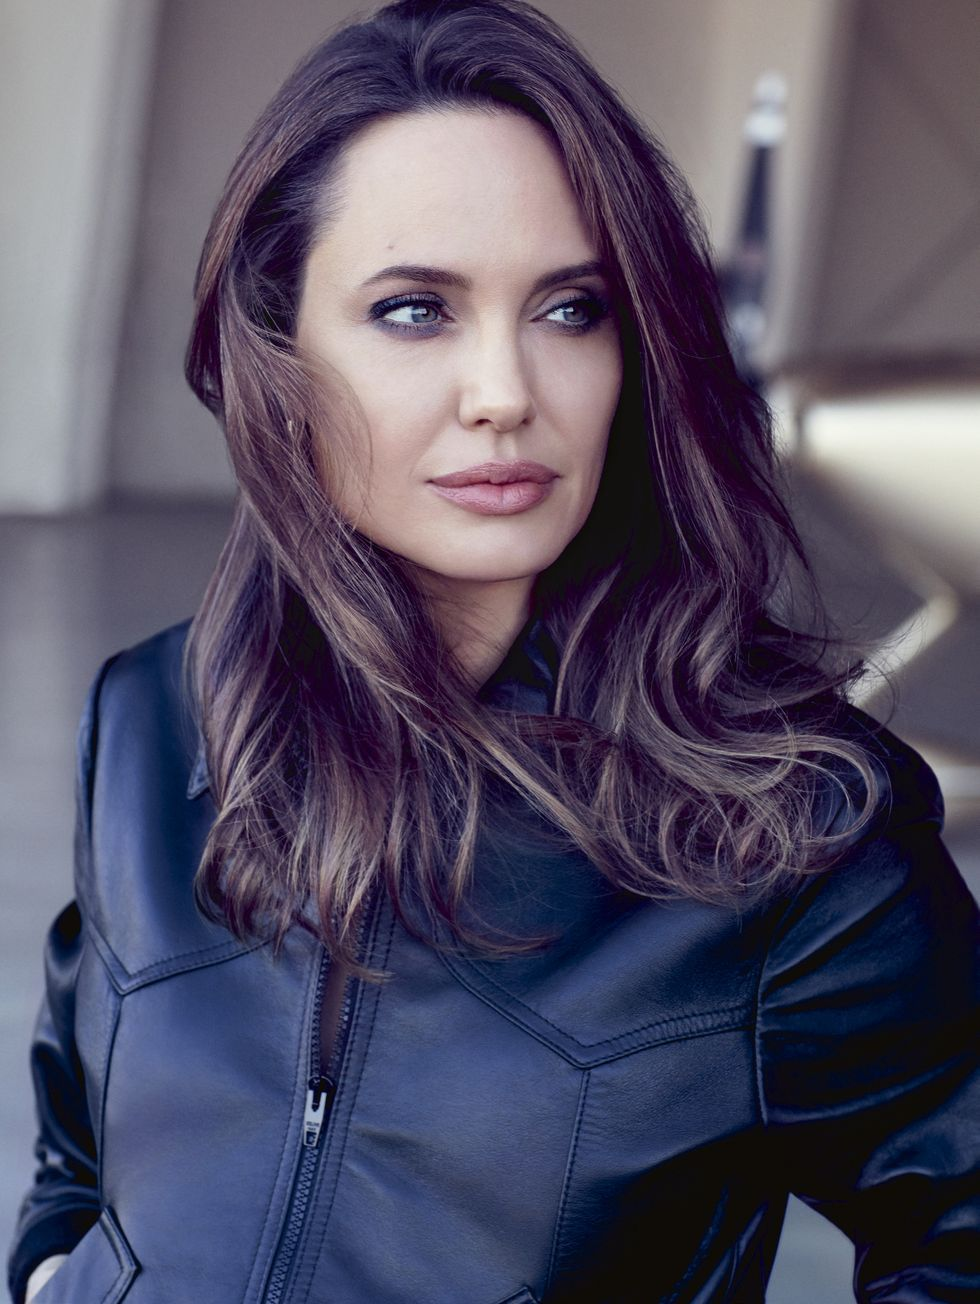 Angelina Jolie Nue Sex railing against 'normal': angelina jolie writes exclusive